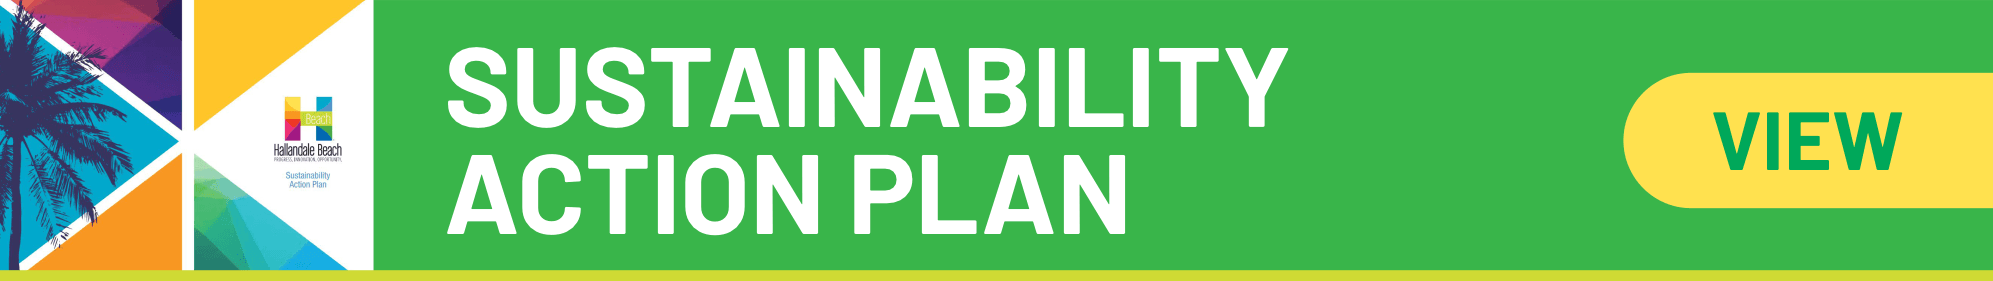 Sustainability Action Plan